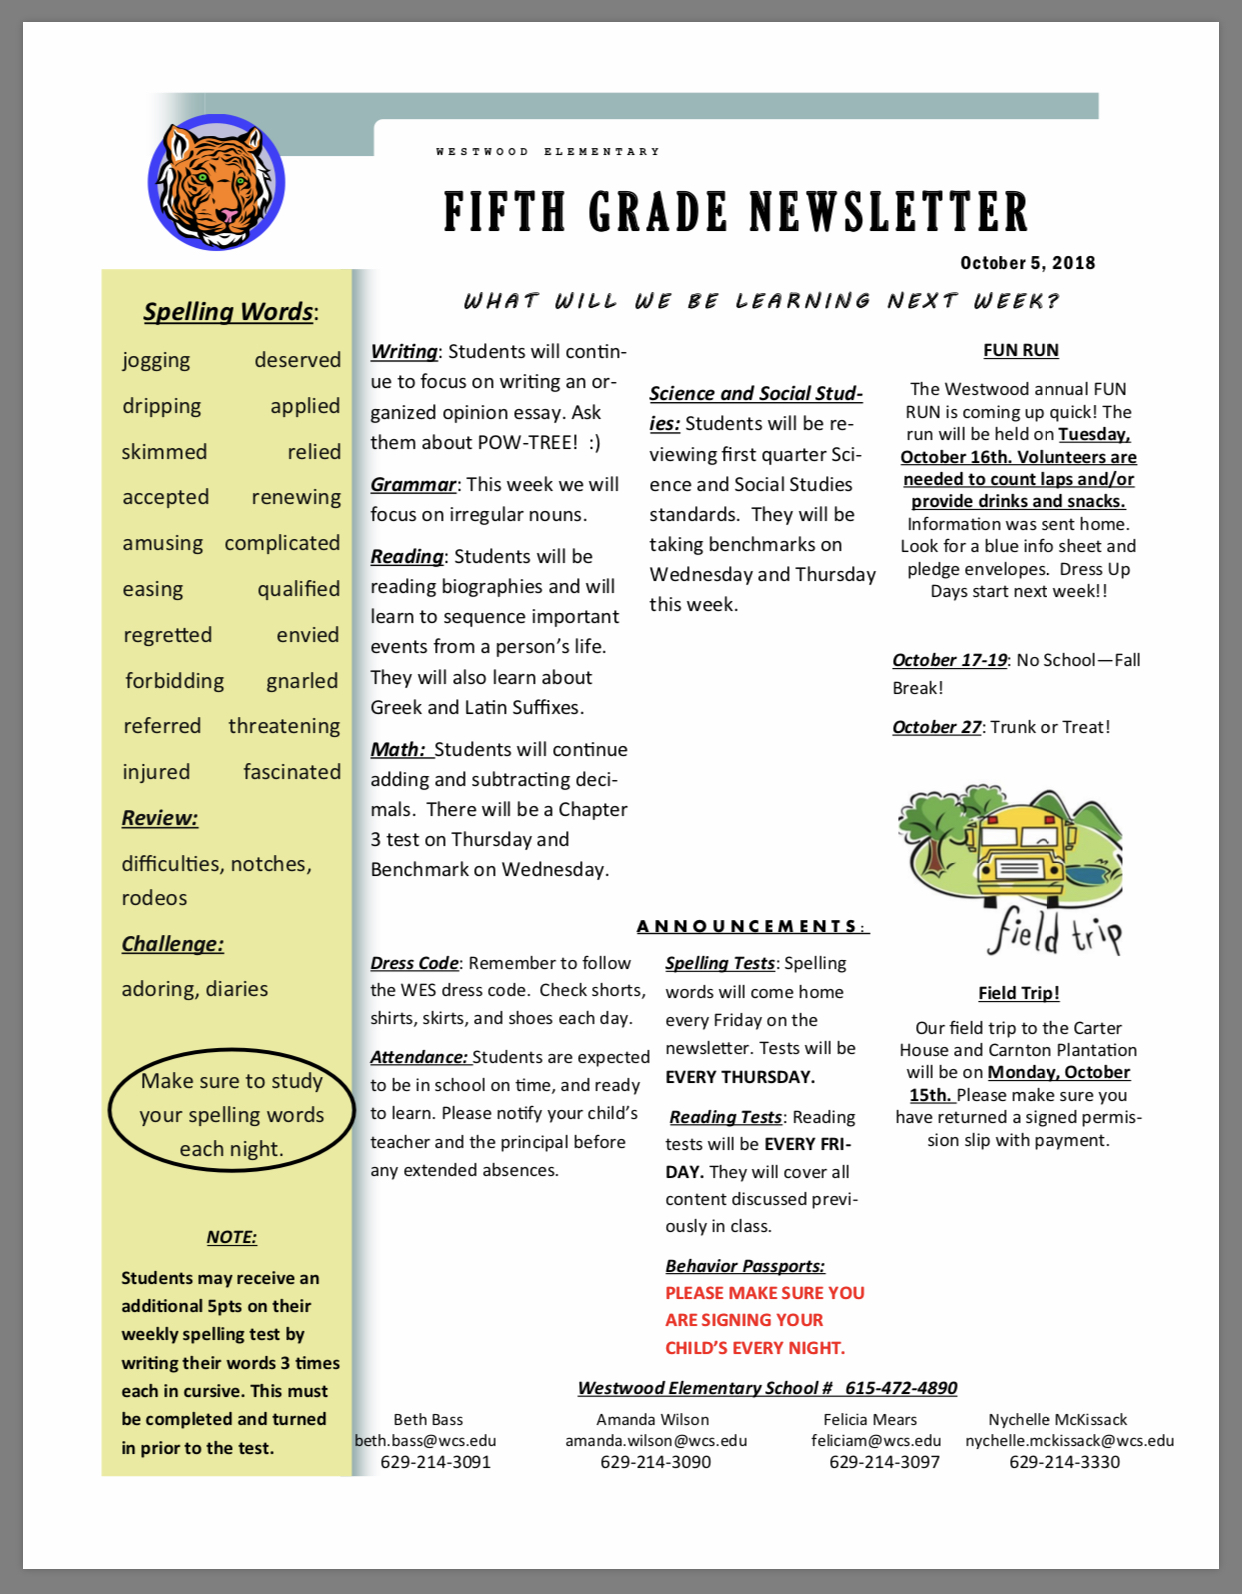 Fifth grade Newletter paper copy available in office